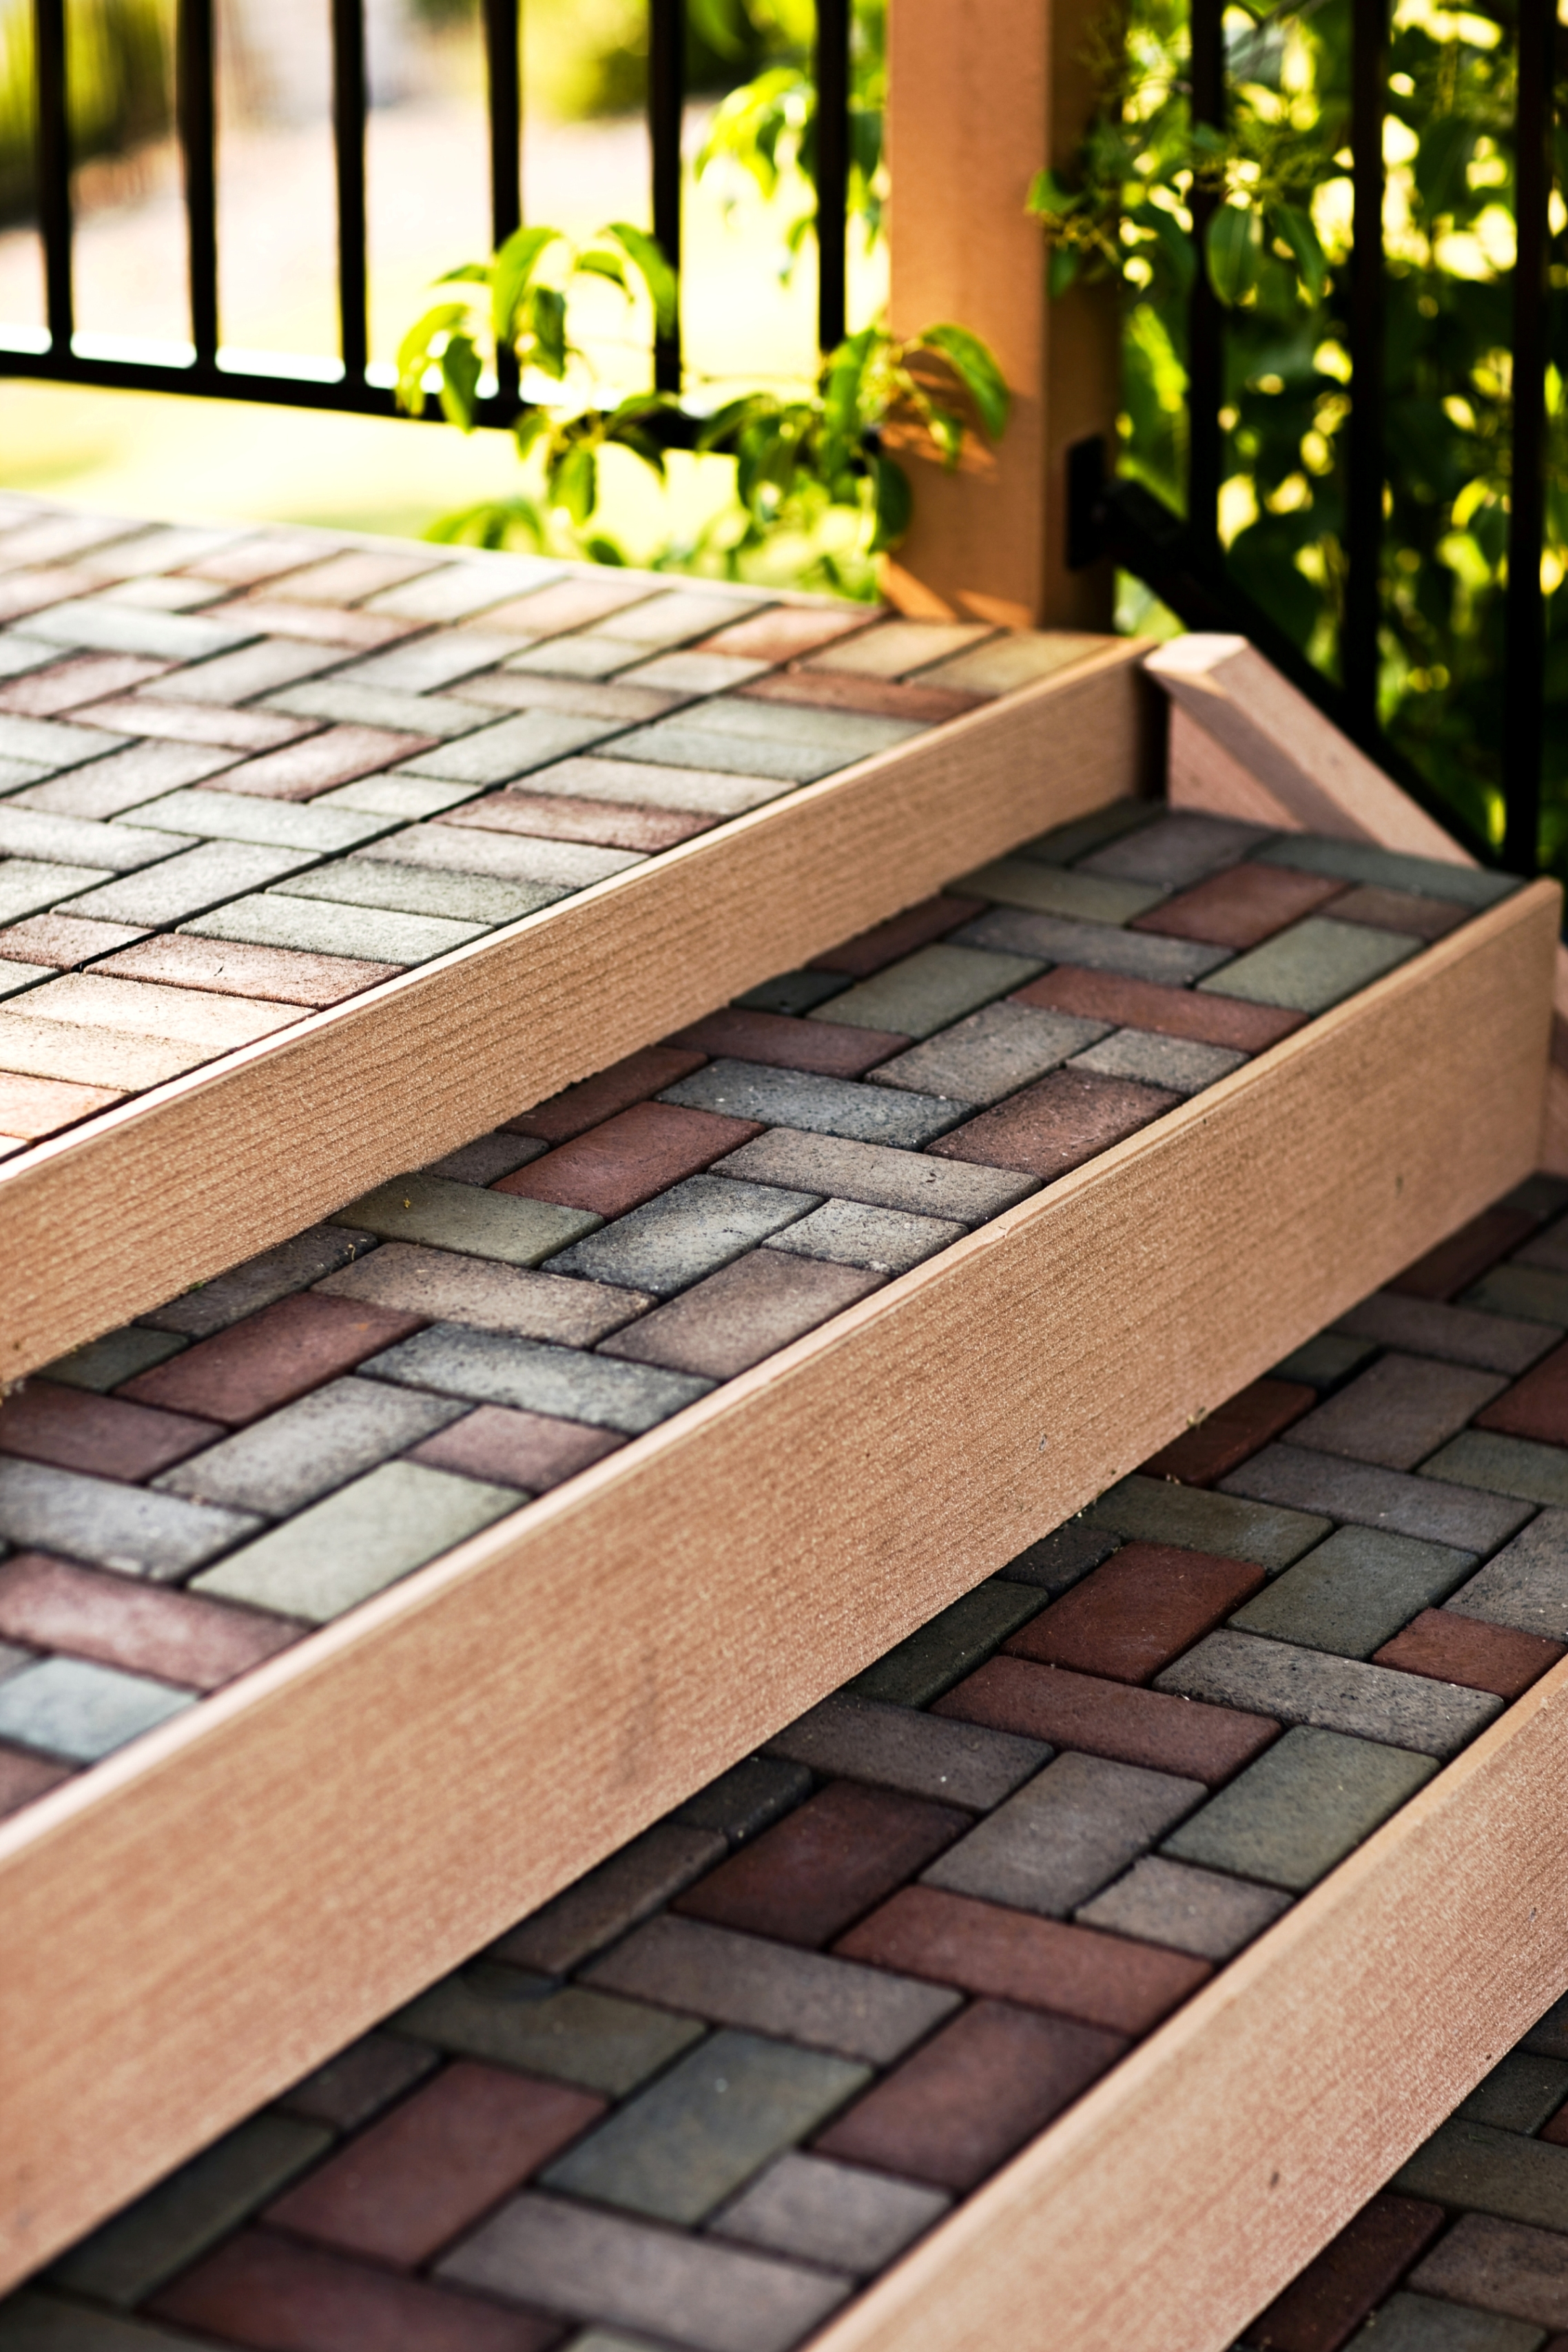 More Green Innovation from VAST Enterprises: VAST® Composite Deck Pavers Bring the Style and ...